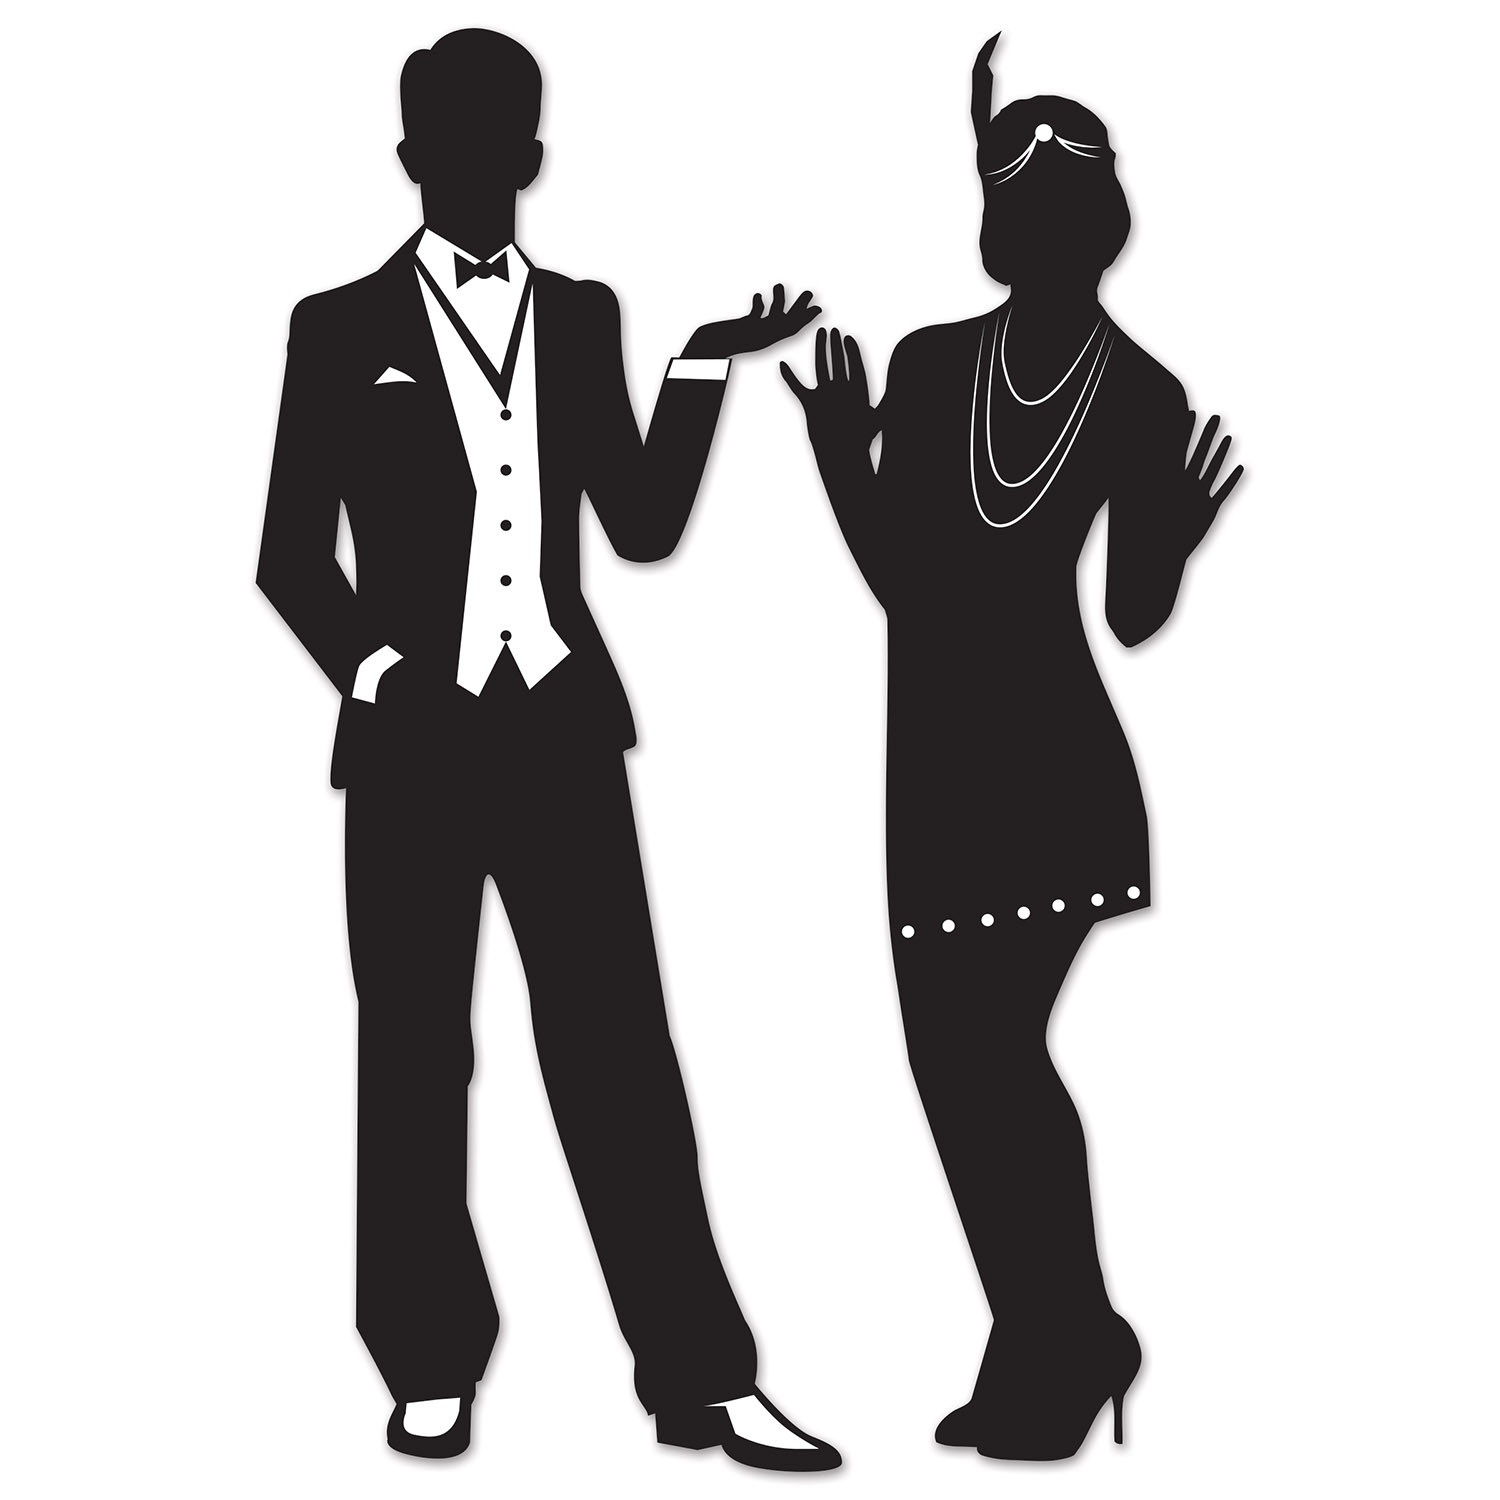 Black 20s silhouette of a male and female dressed up for a party.